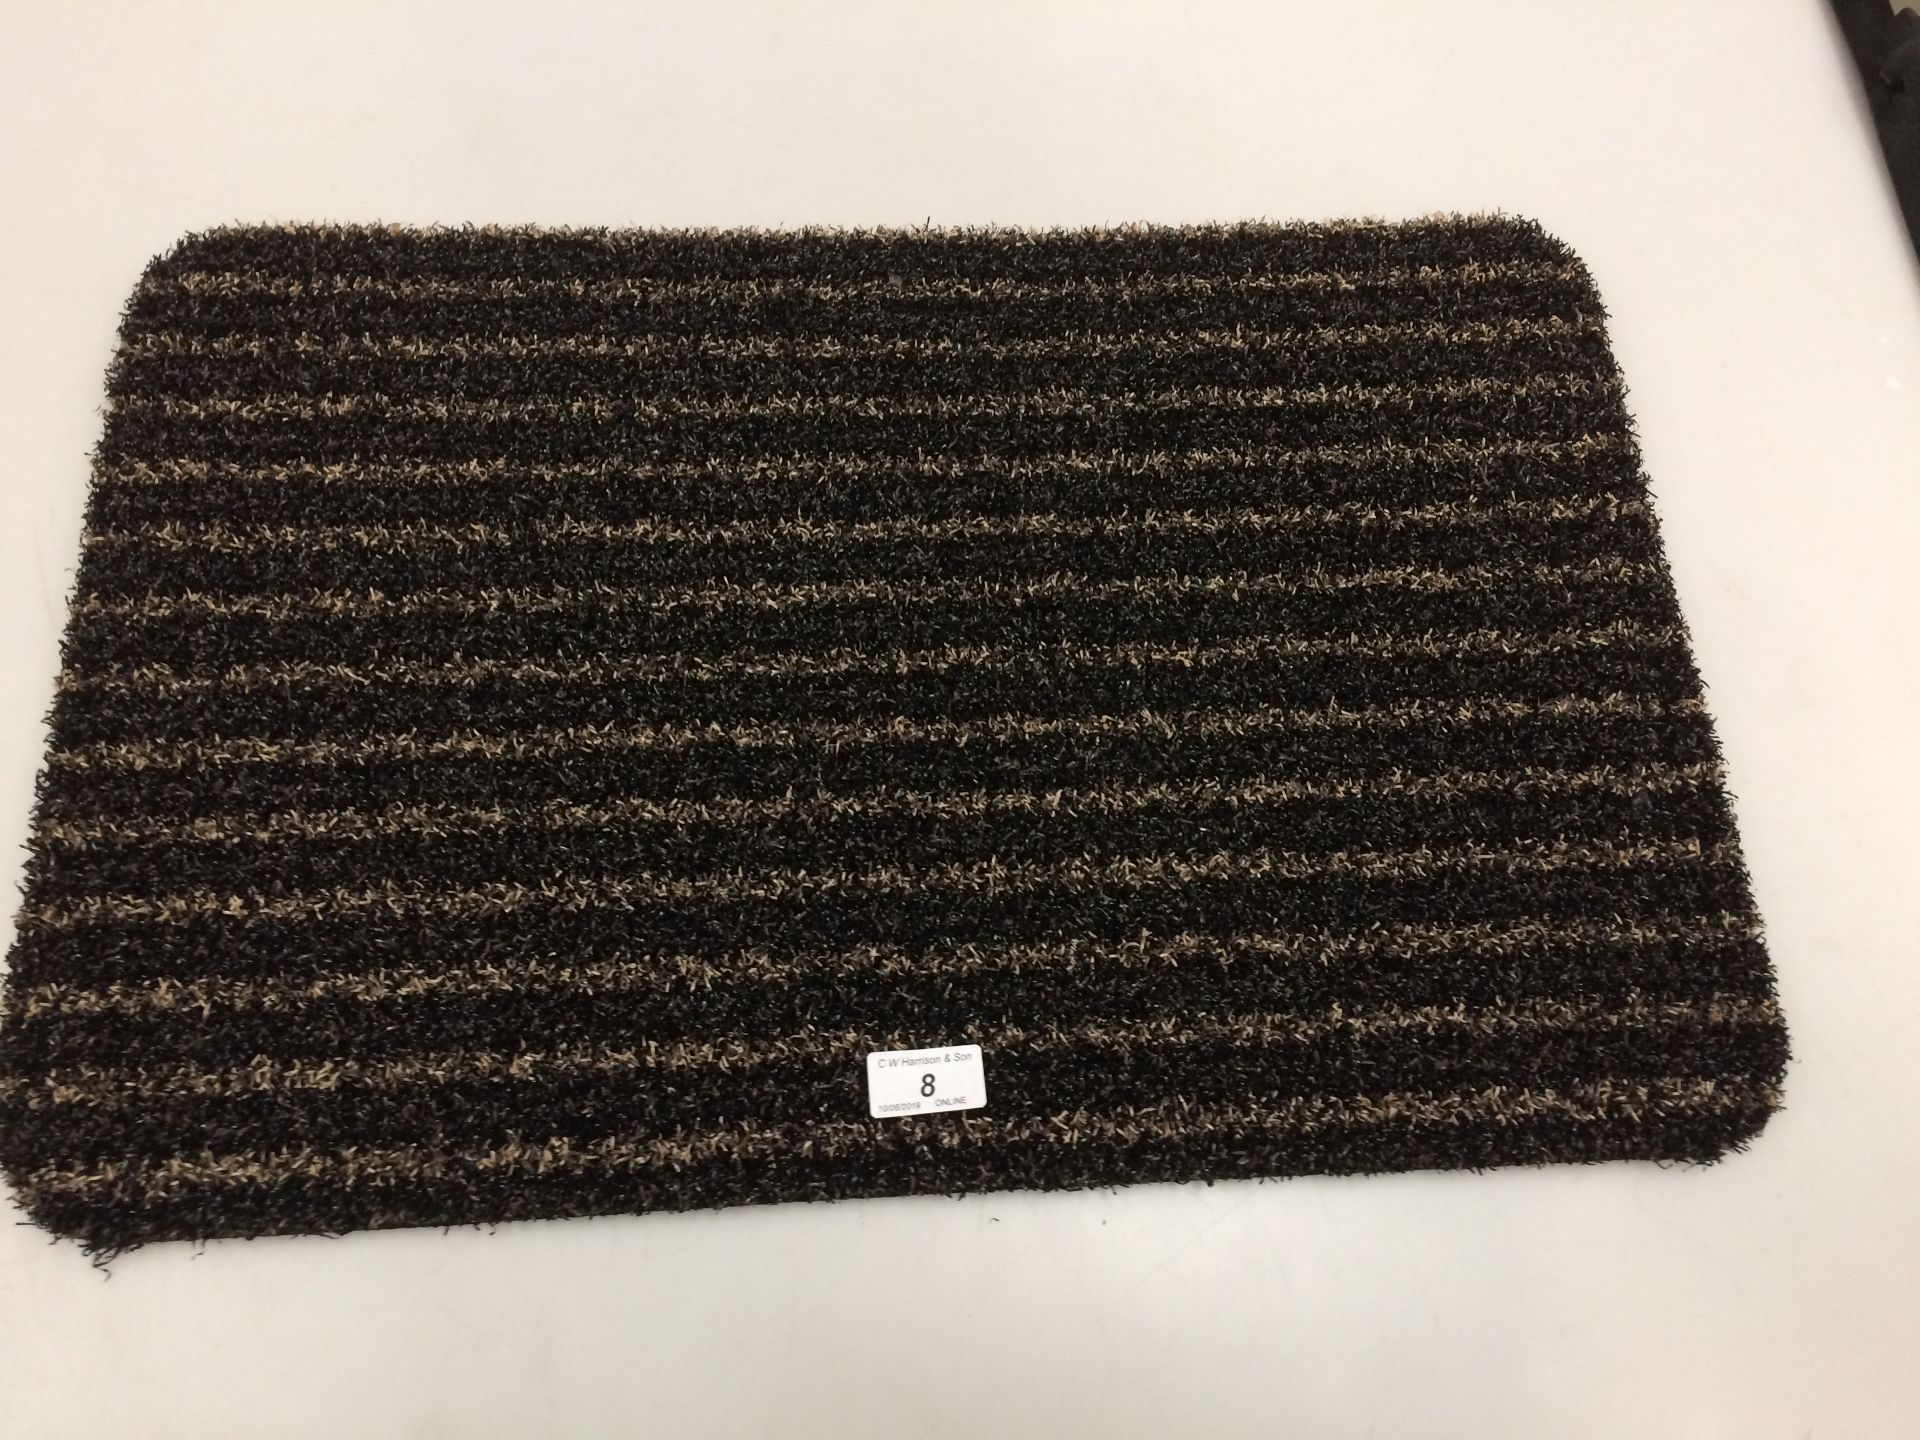 Lot 8 - 10 x black and gold striped door mats with rubber anti-slip inlay each 40 x 60cm